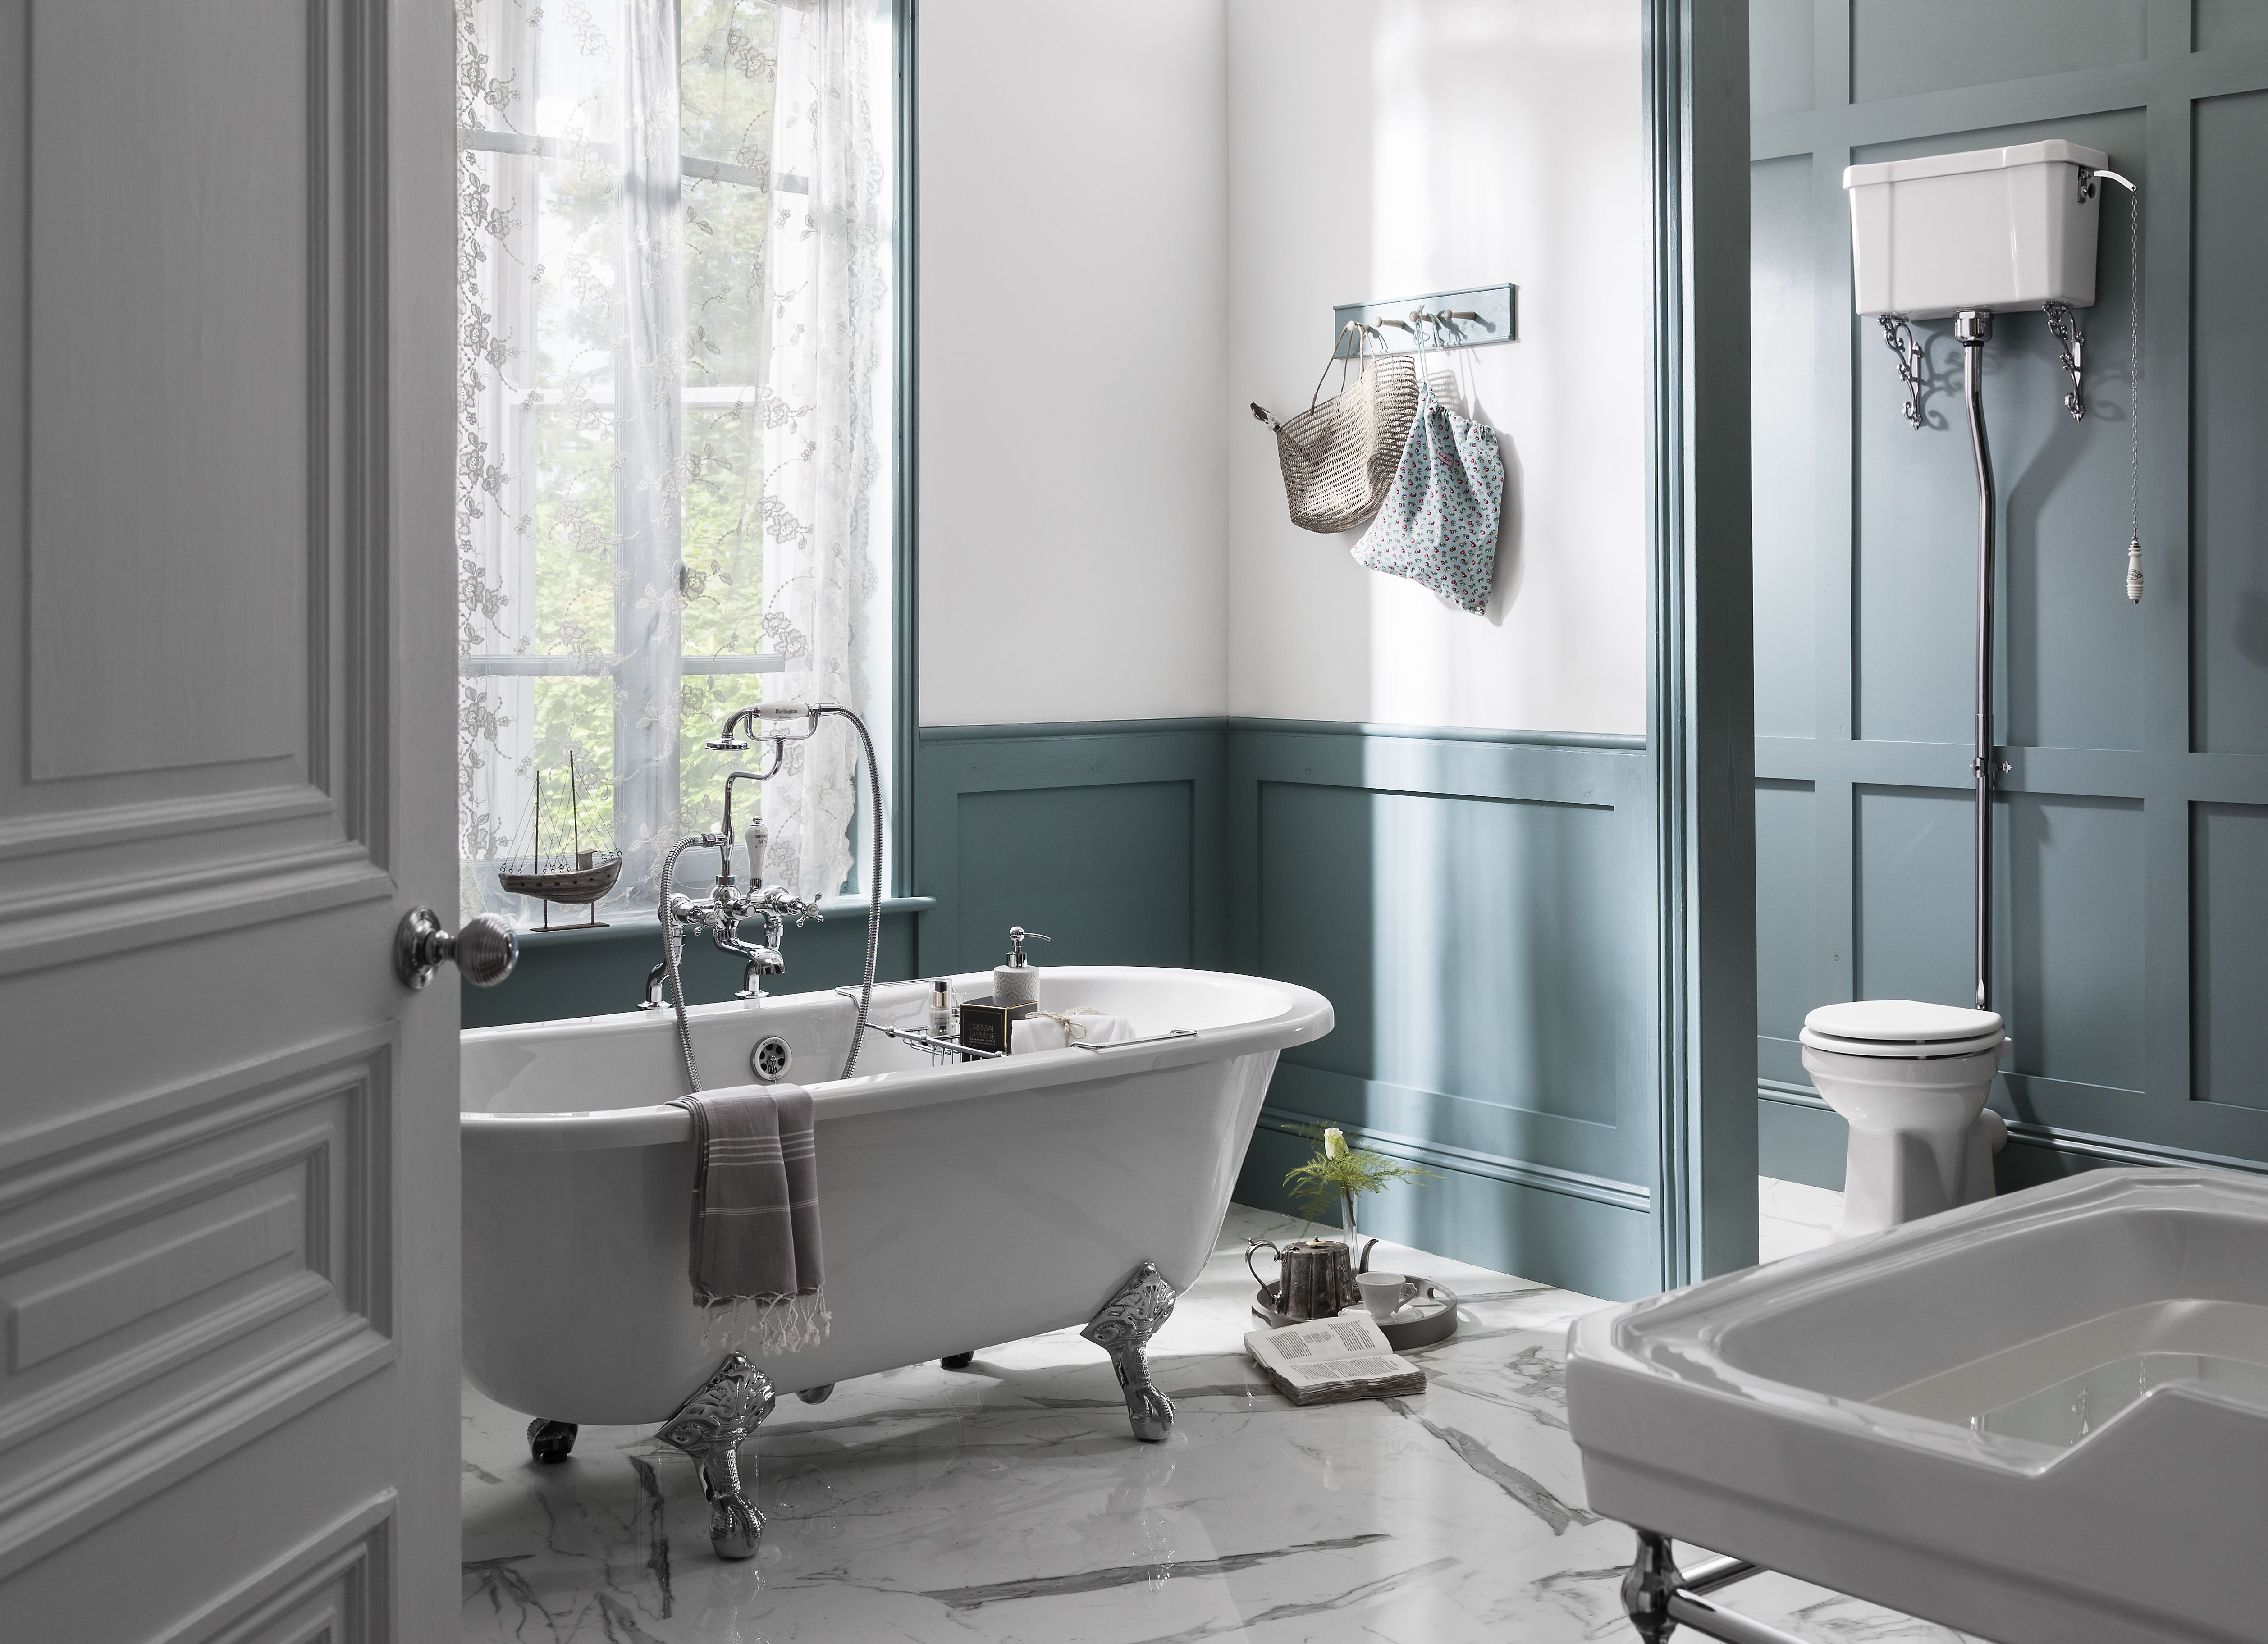 Introduce Luxurious Style To Bathroom With Our Windsor Bath From